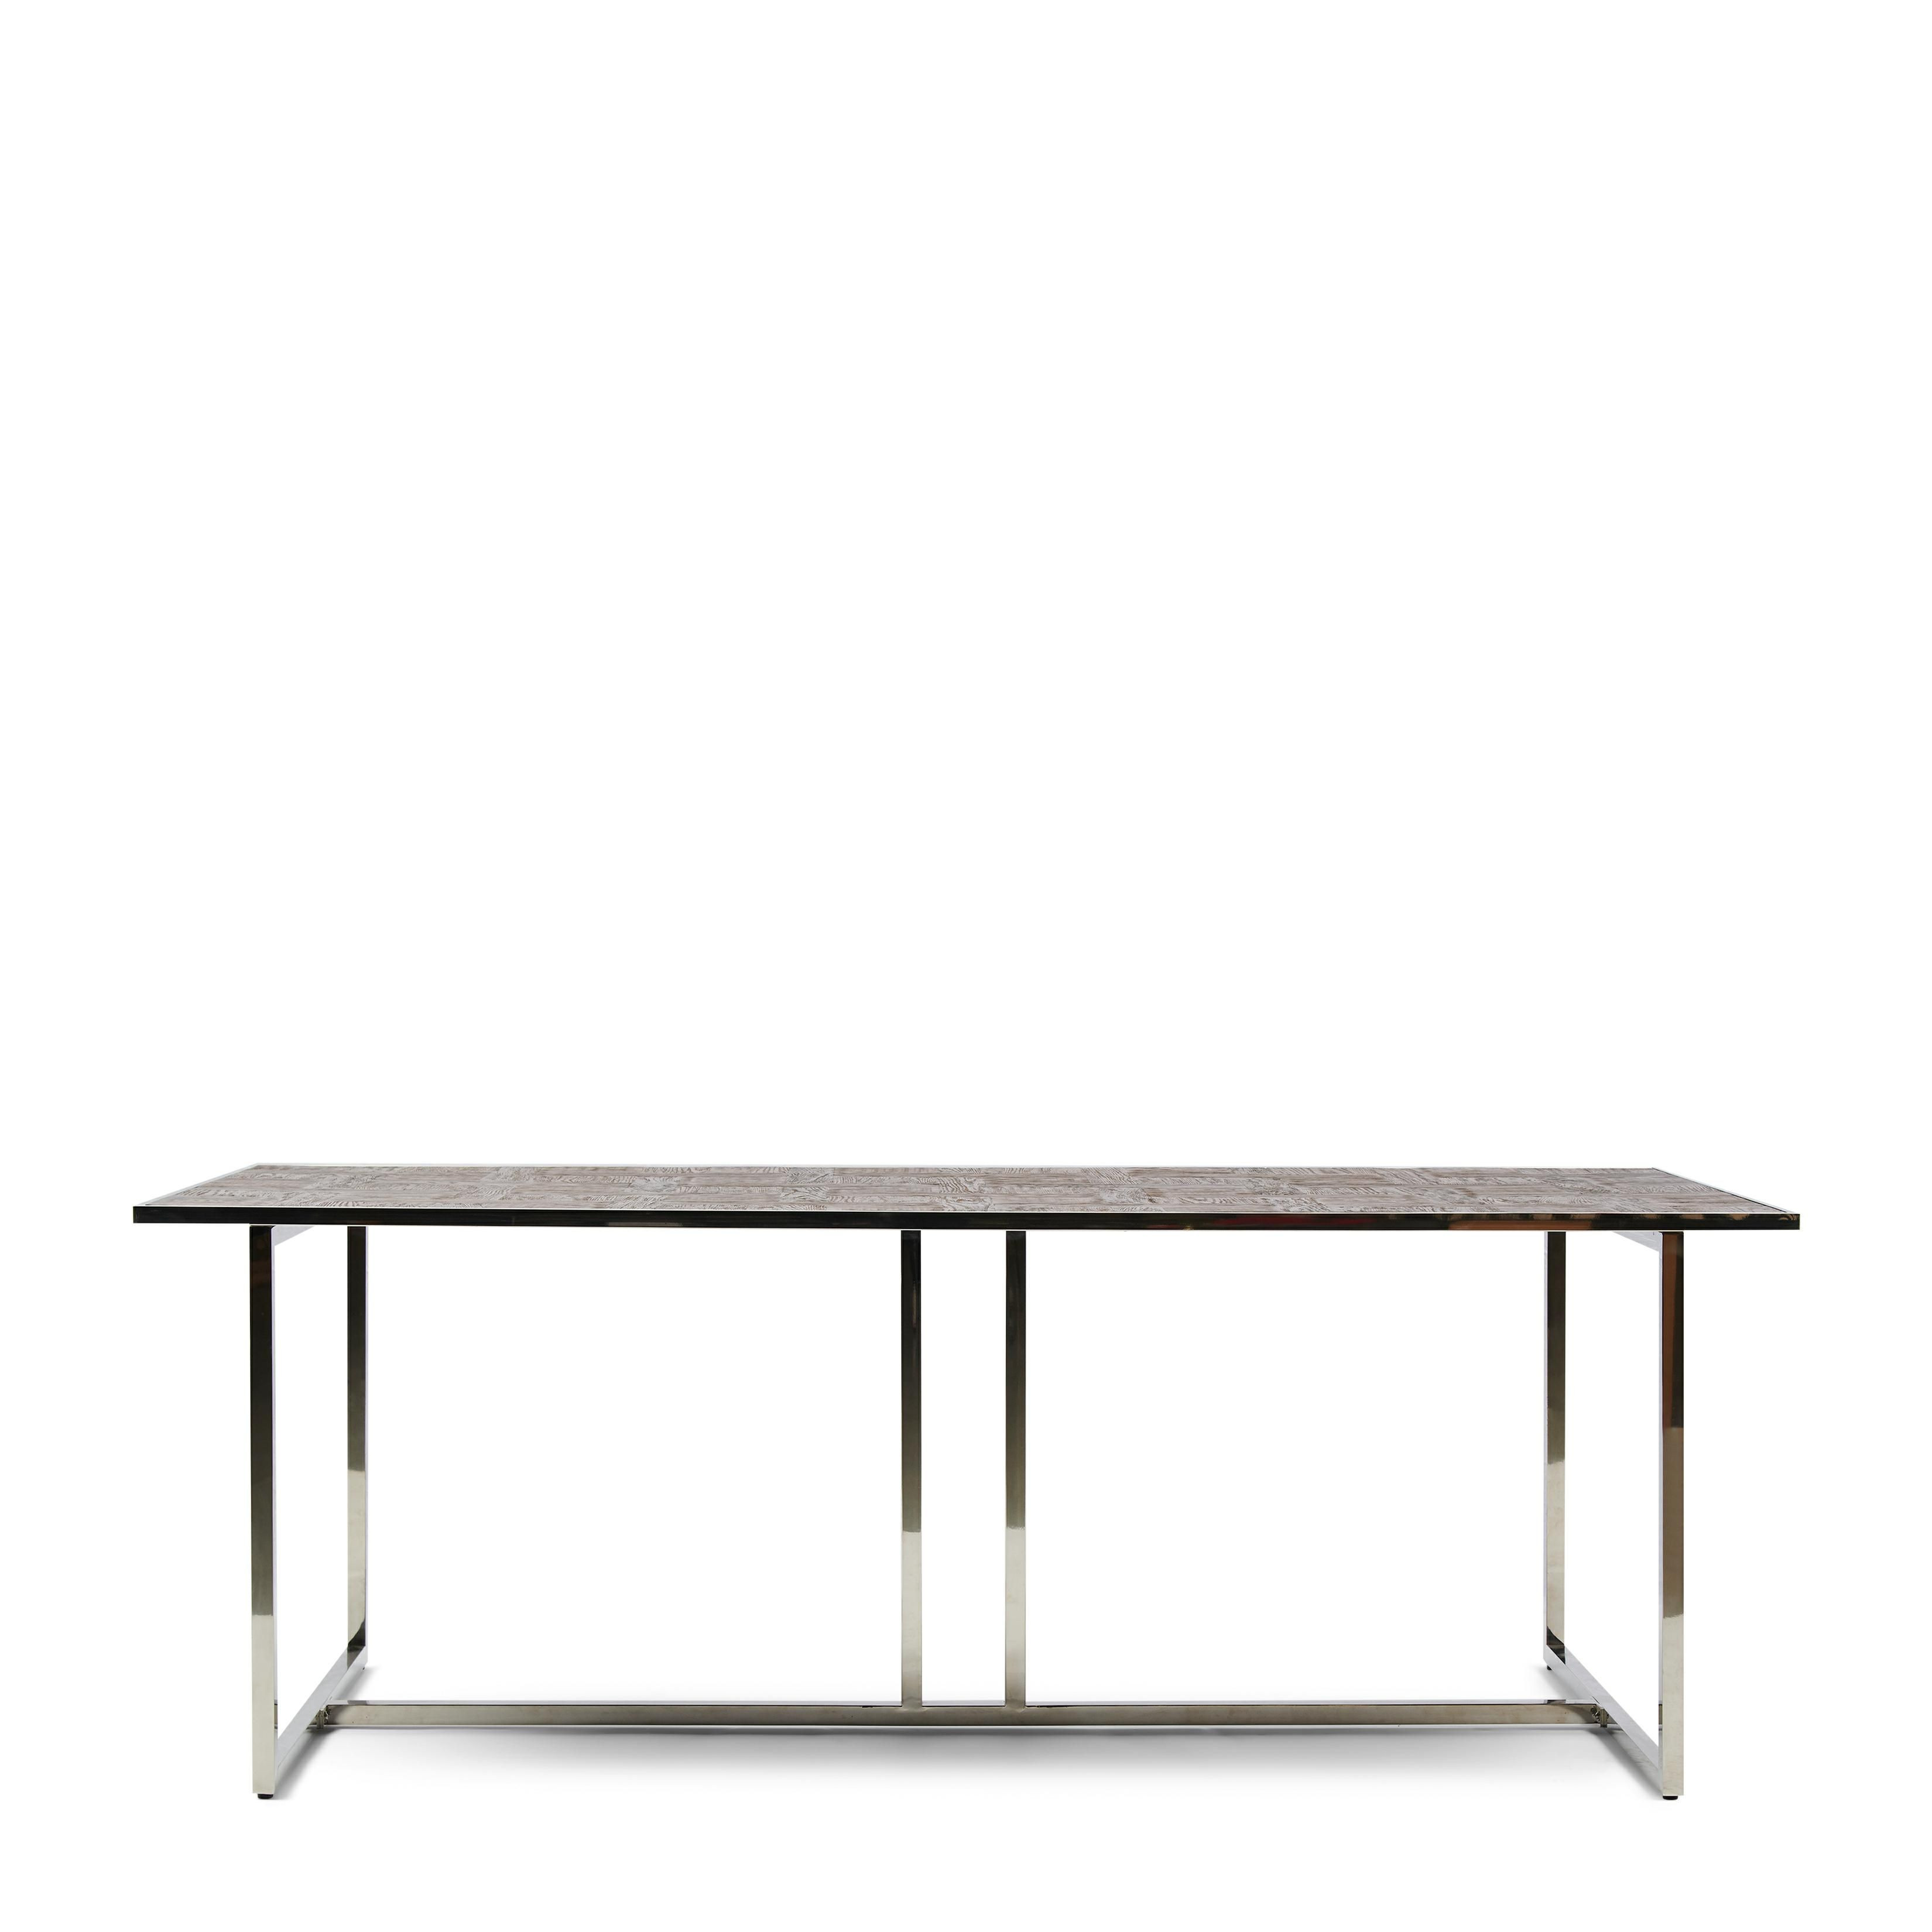 Bleeckerstreet Dining Table 220x90 / Rivièra Maison